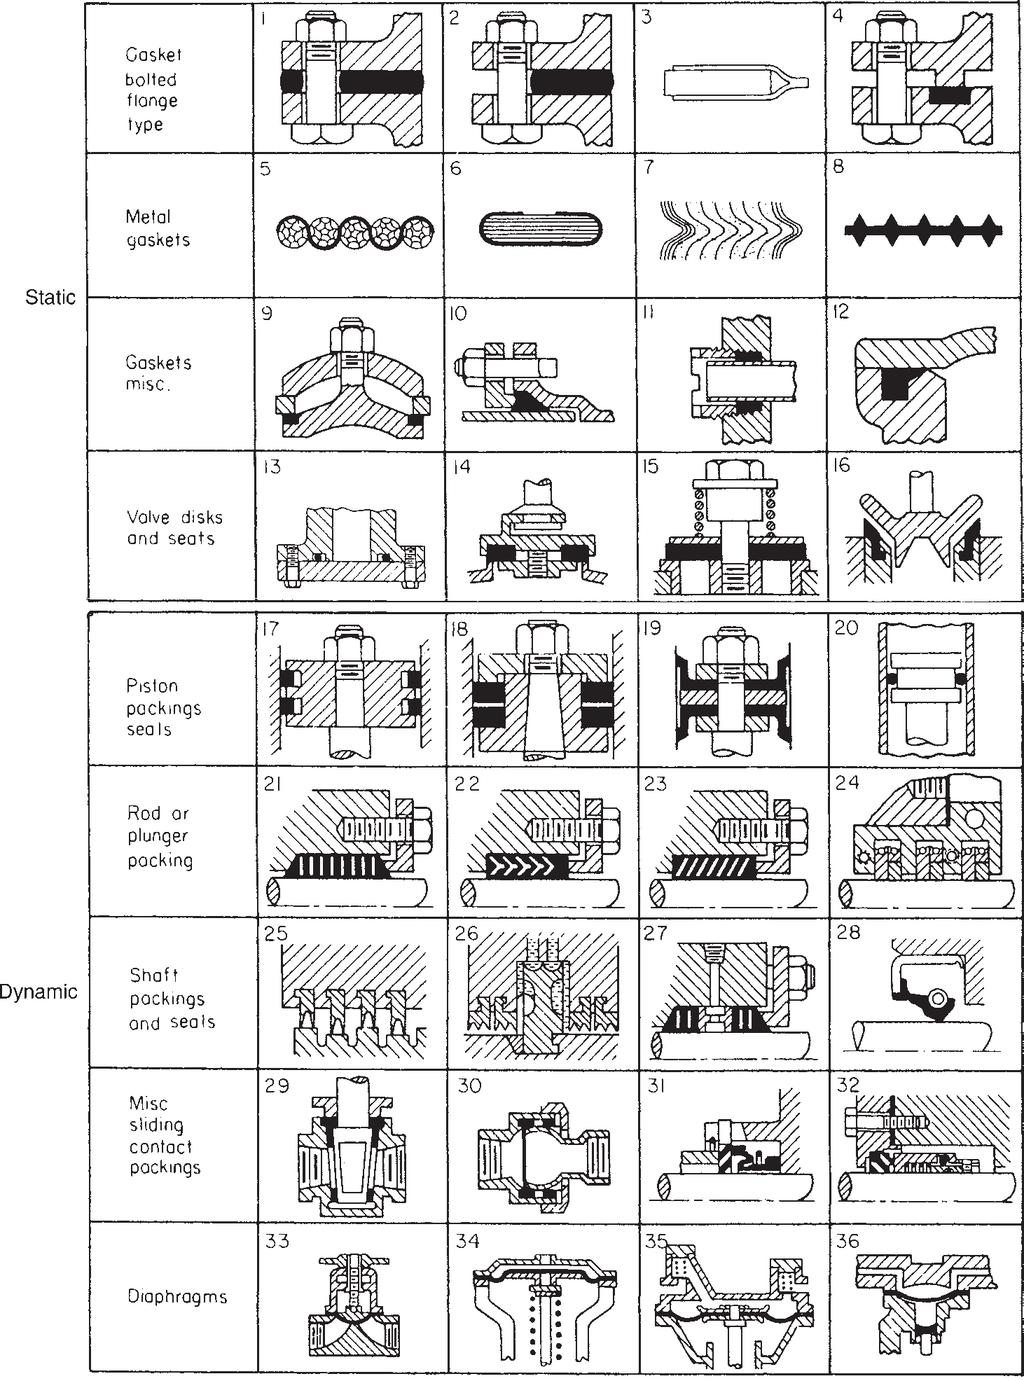 Fuels and Furnaces. Section 7 - PDF